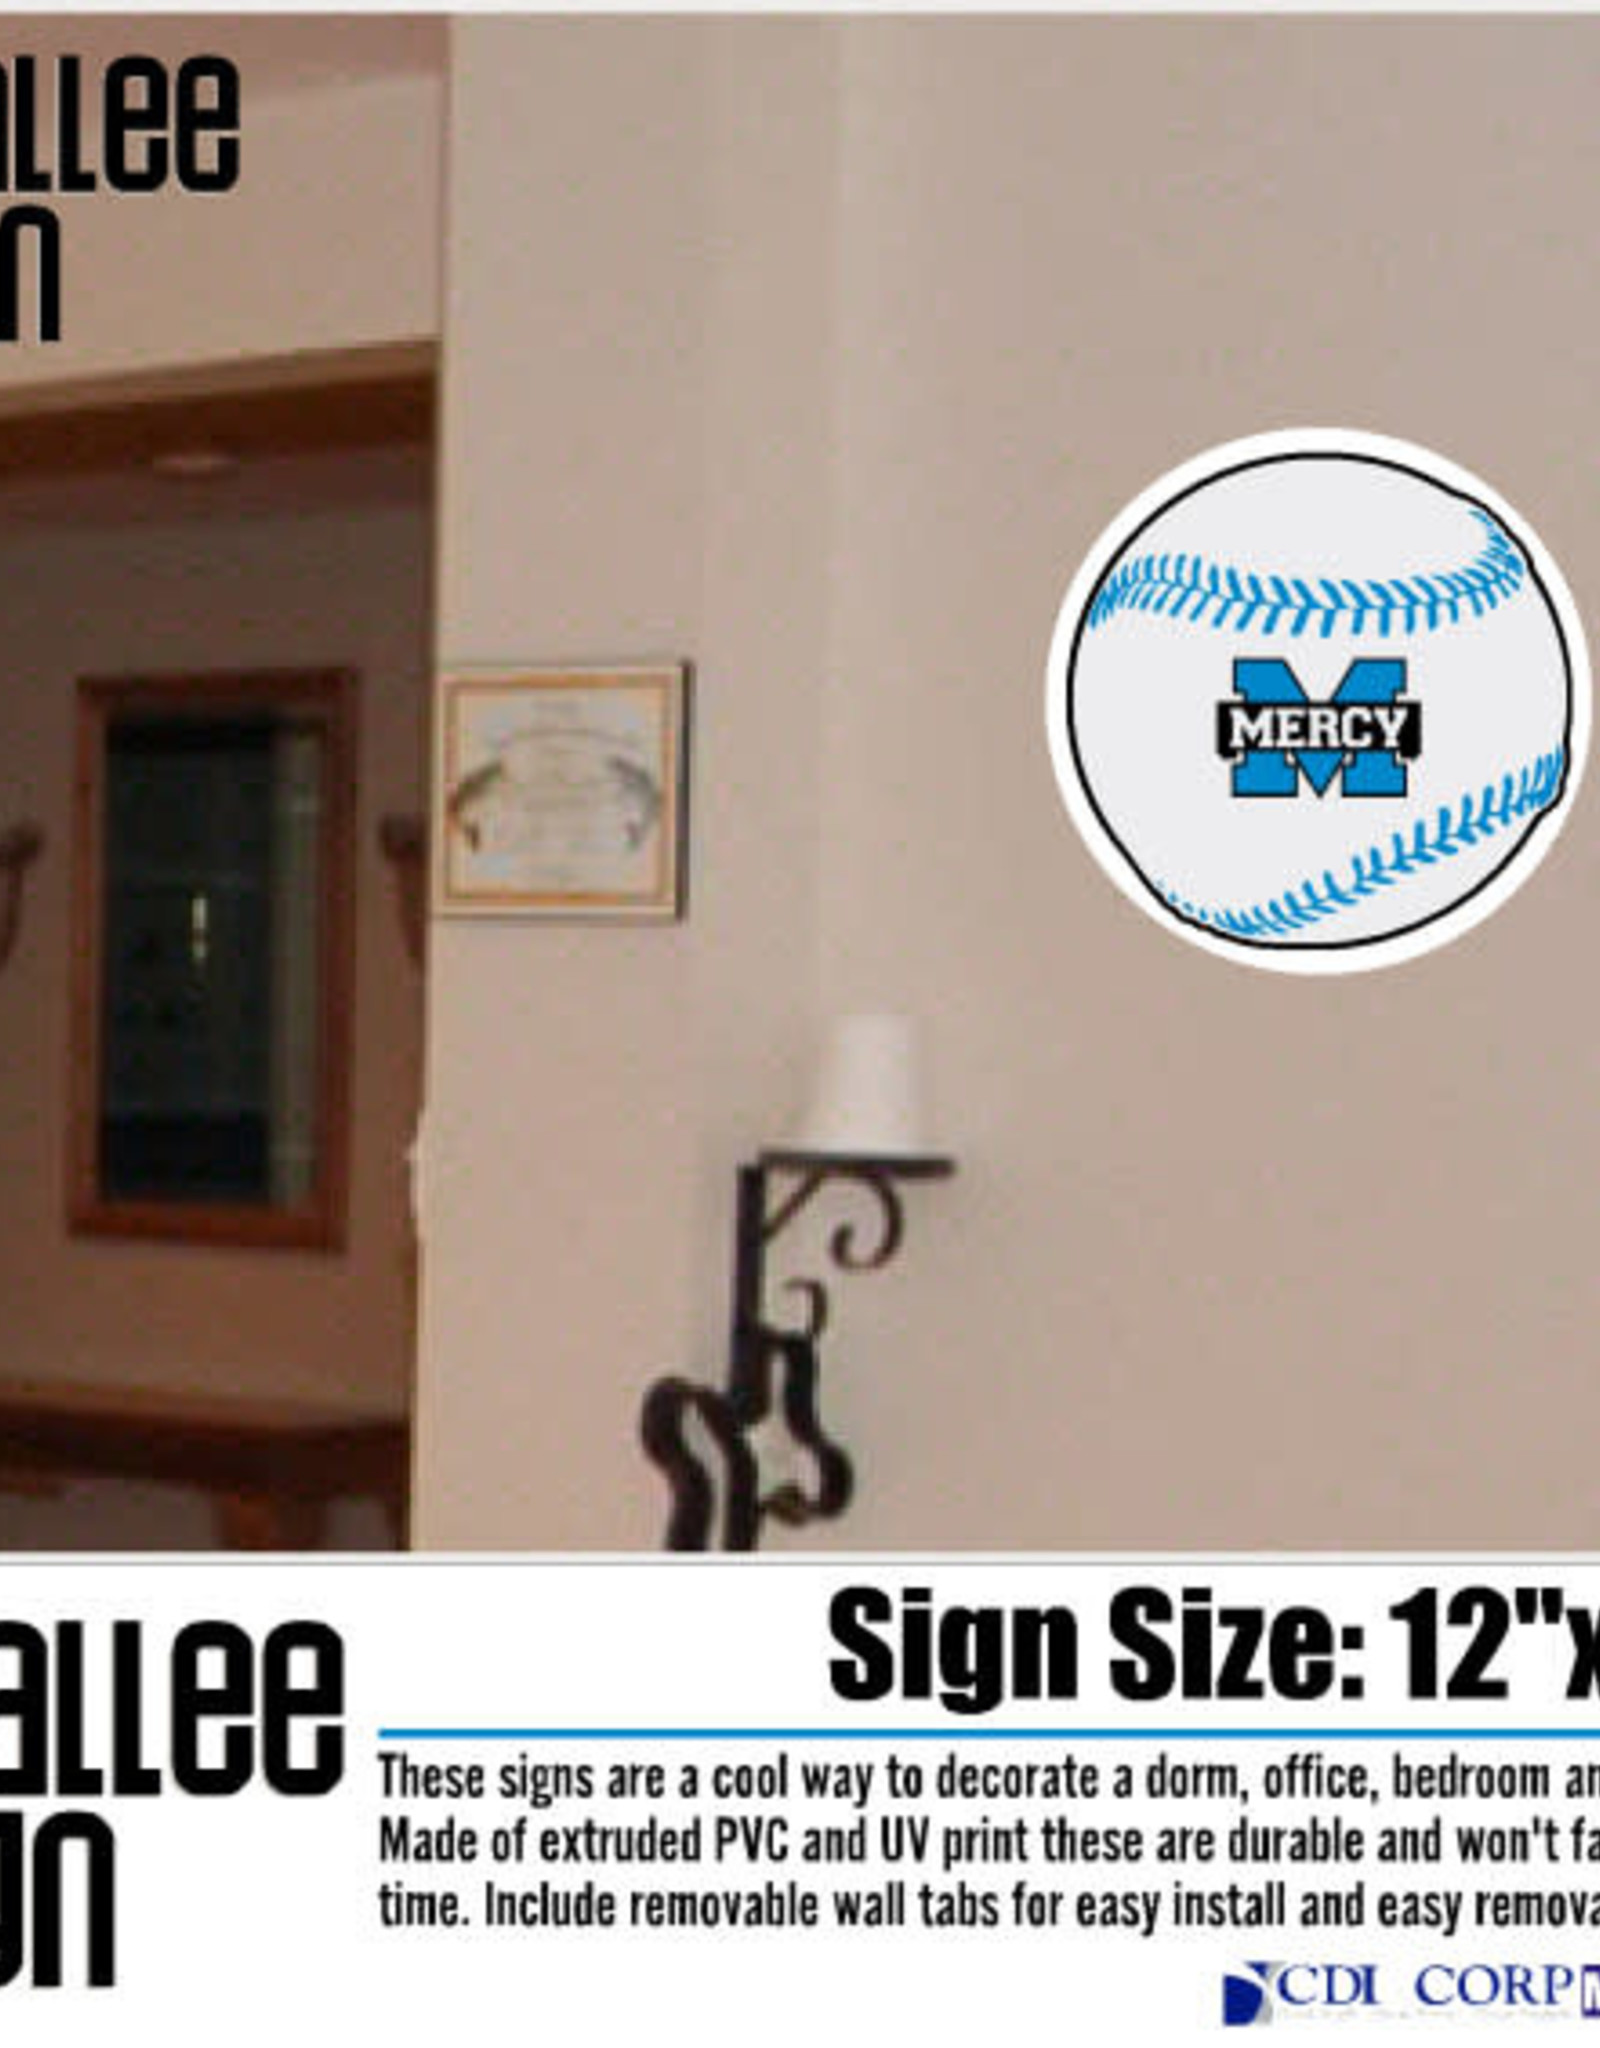 Wallee Sign